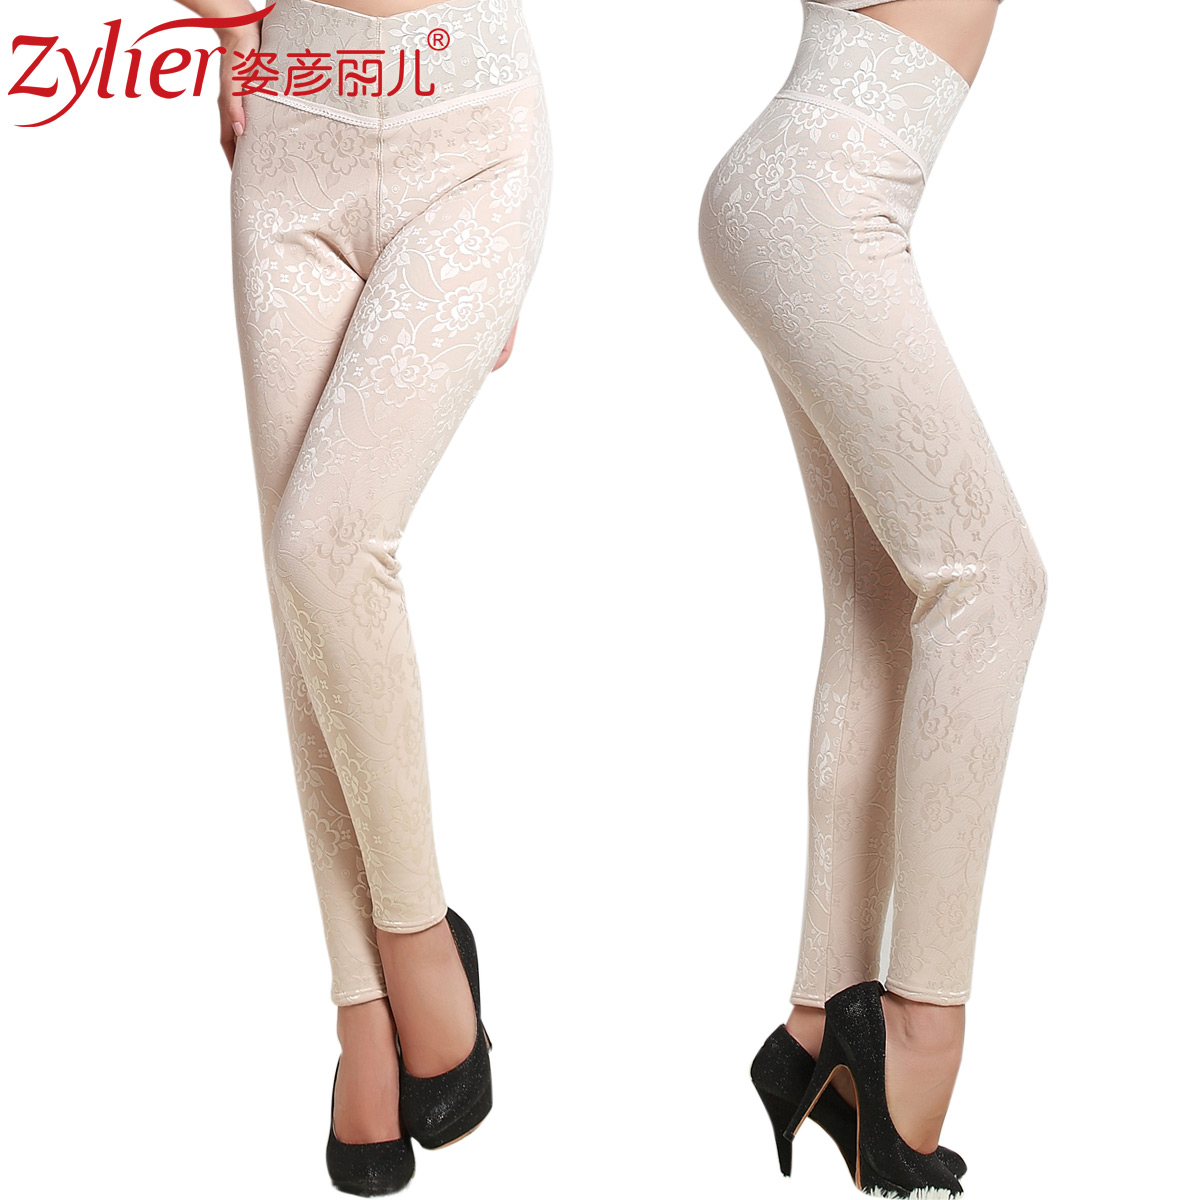 2012 winter new arrival high waist abdomen drawing butt-lifting magnetic therapy body shaping thermal legging bk113